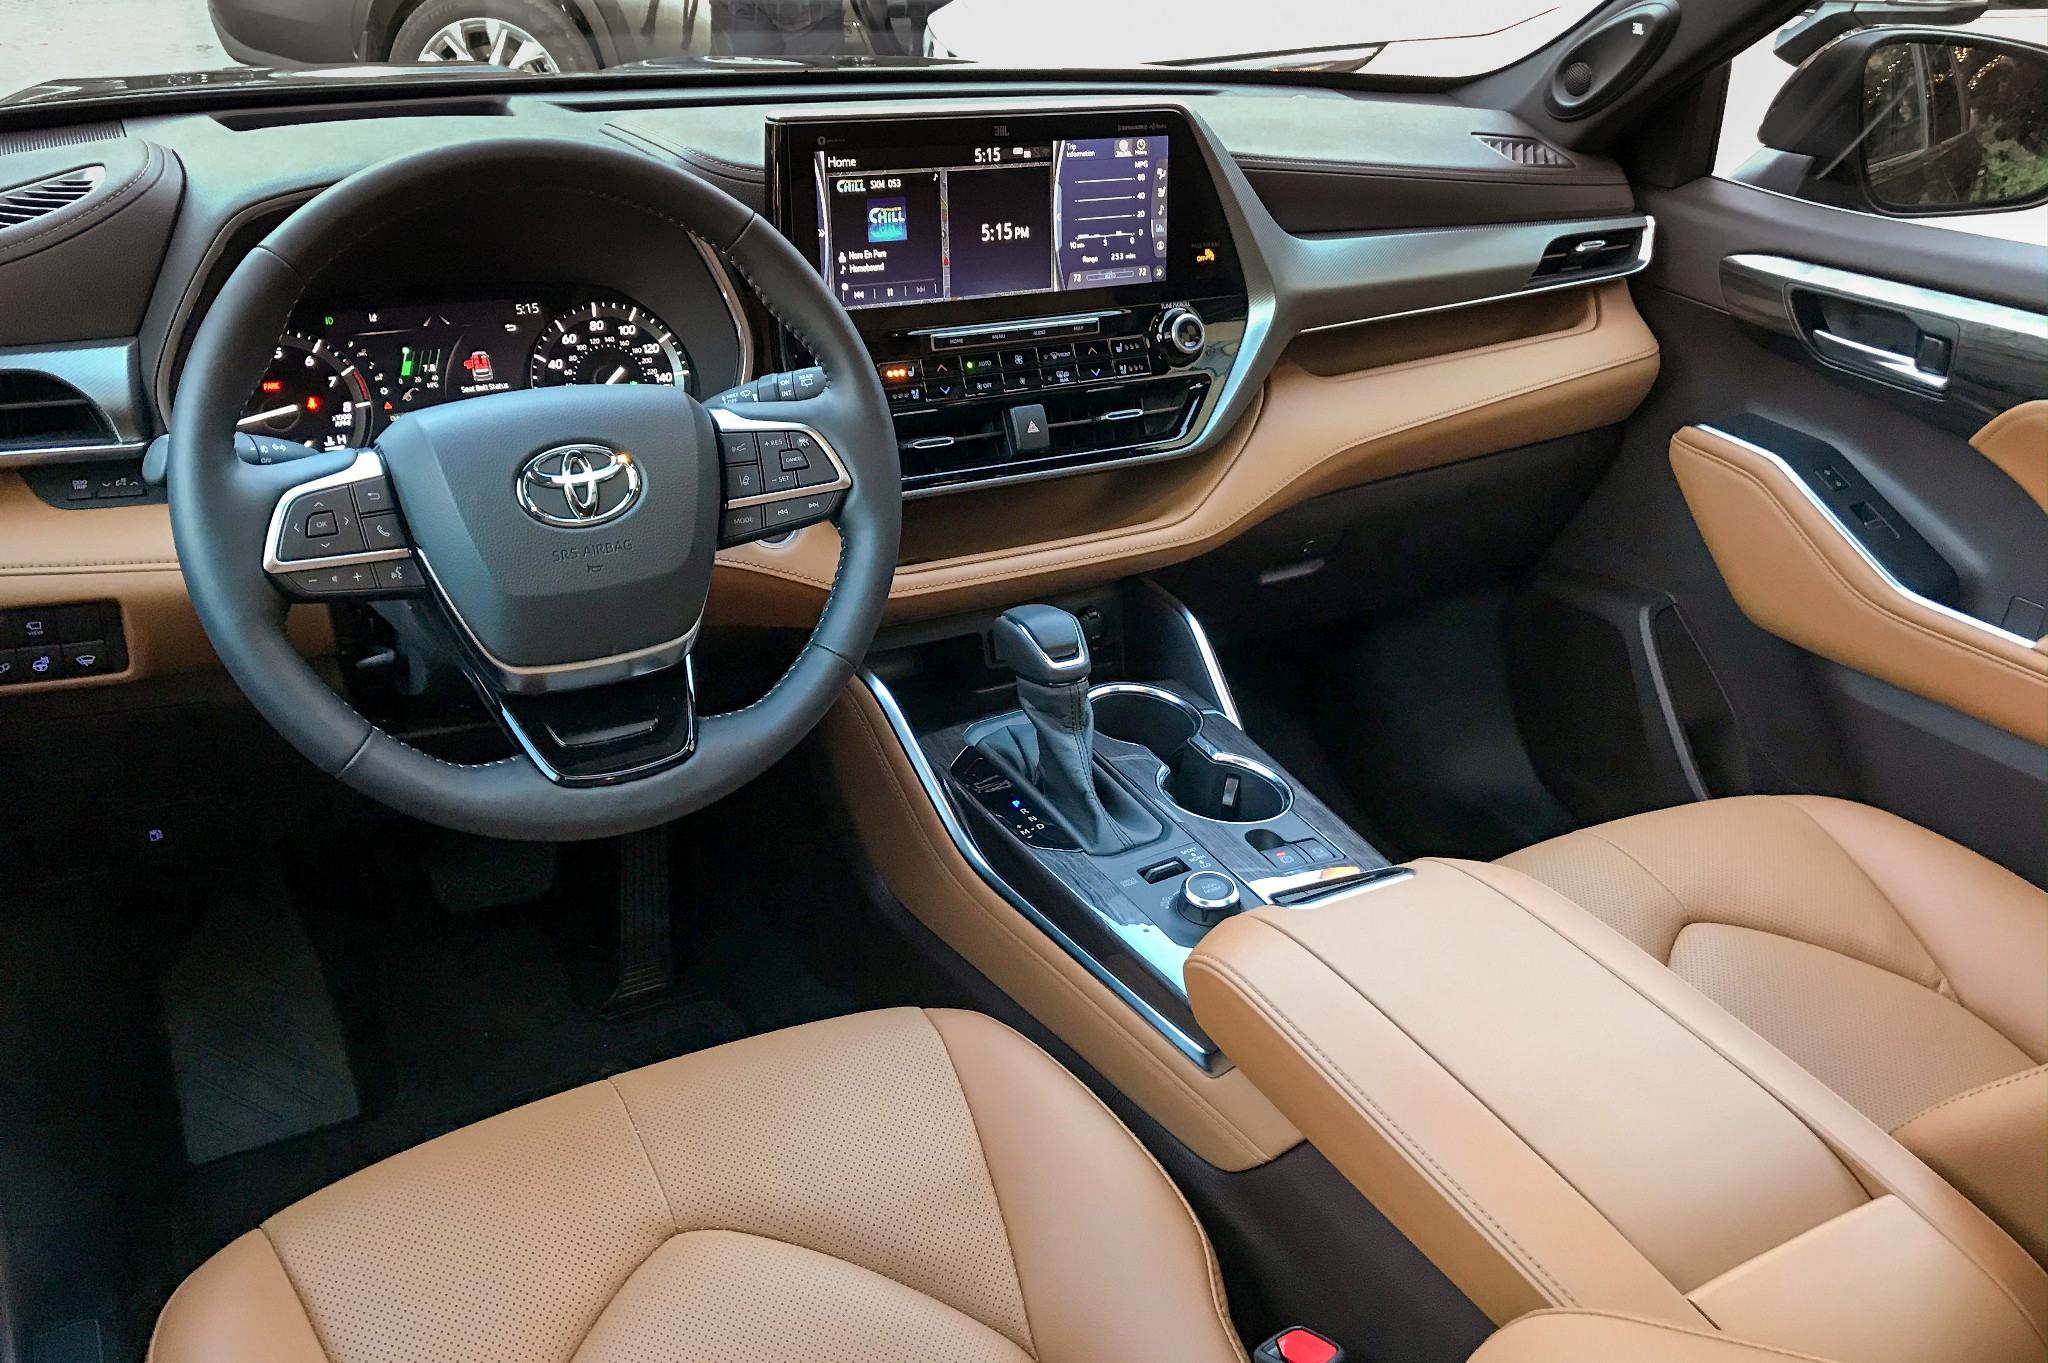 toyota-highlander-2020-07-interior-cockpit-shot.jpg